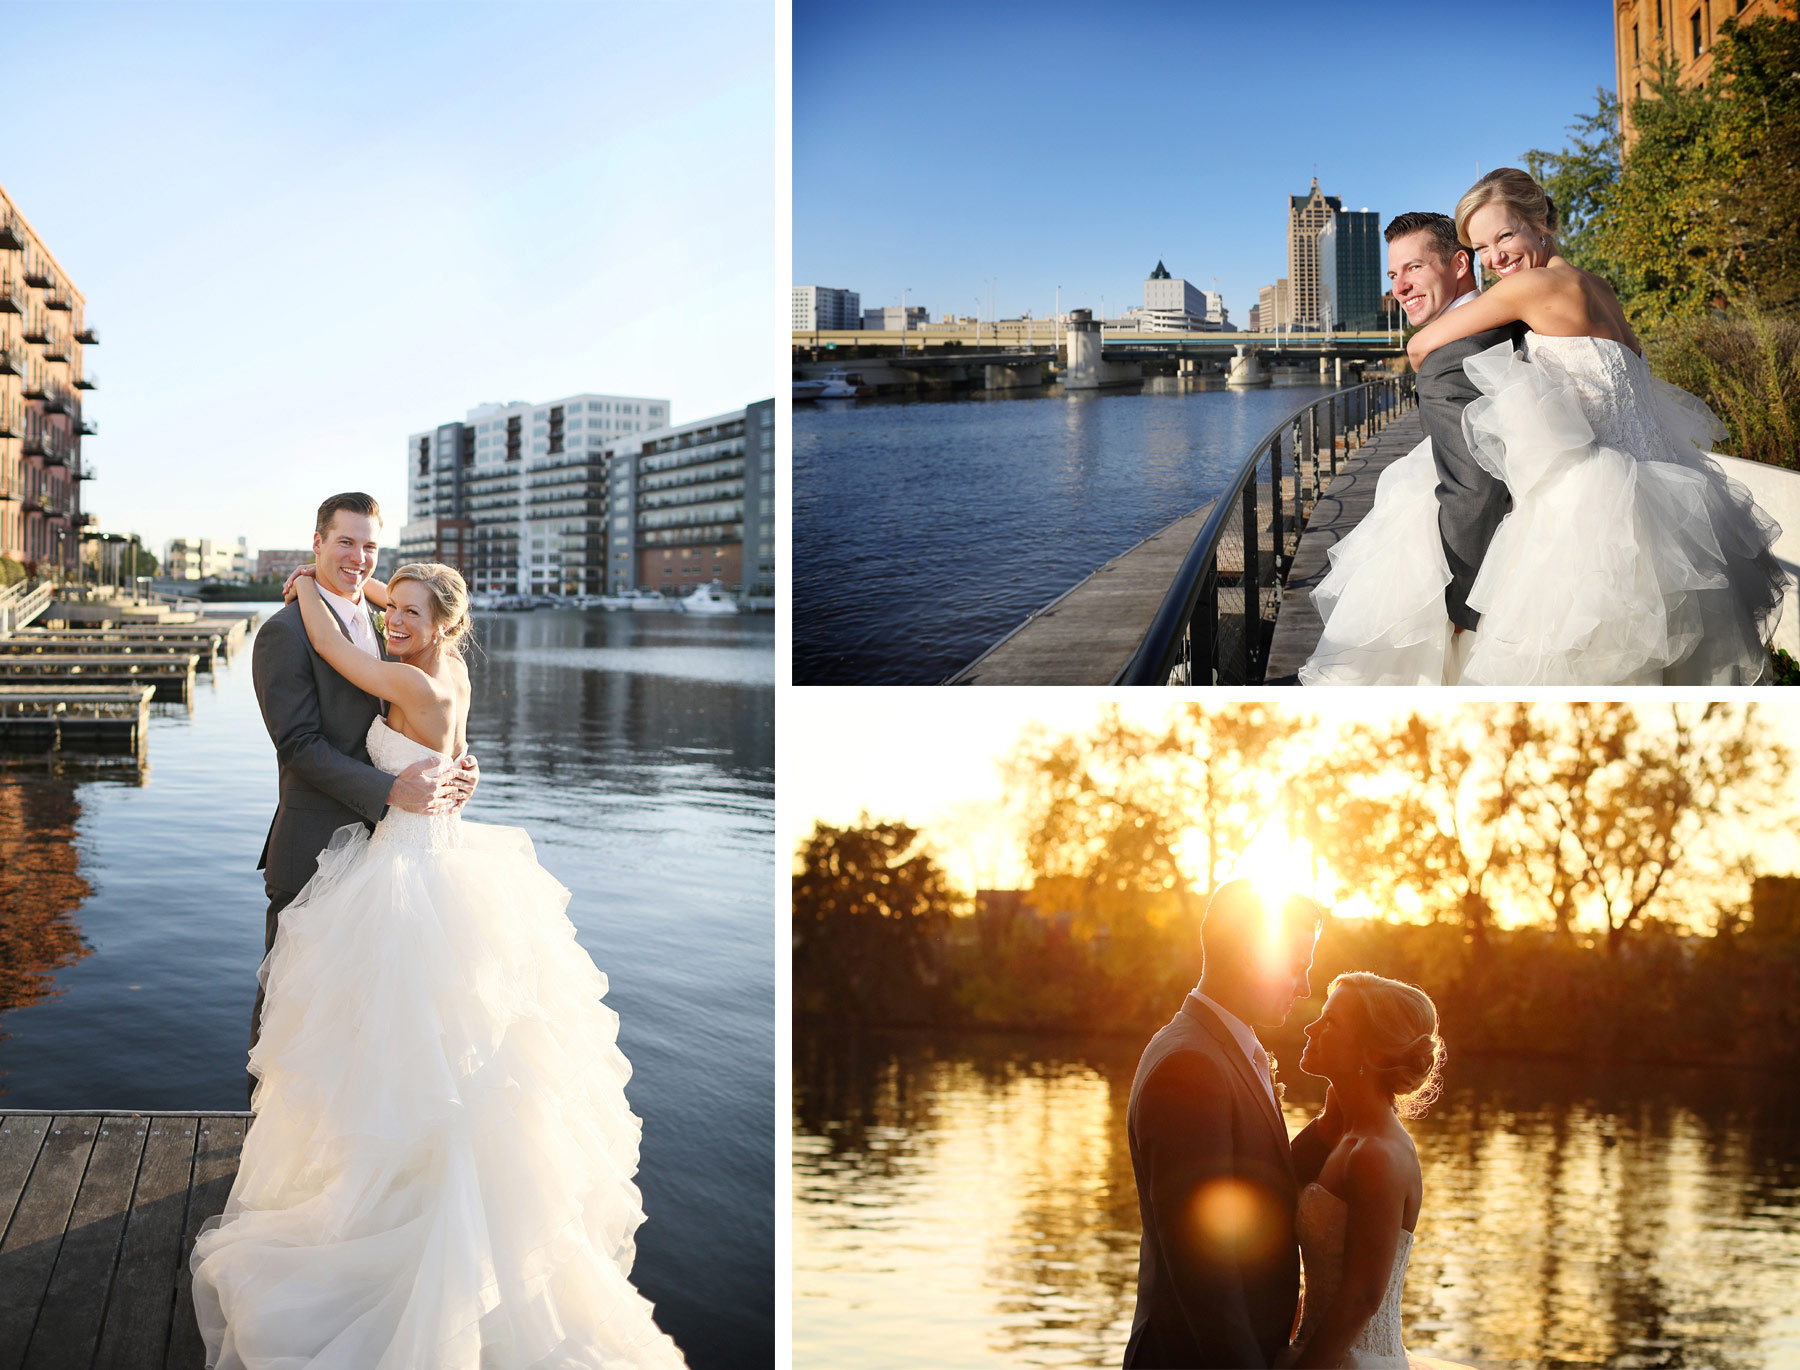 20-Milwaukee-Wisconsin-Wedding-Photographer-by-Andrew-Vick-Photography-Fall-Autumn-Destination-Bride-Groom-Downtown-River-Piggyback-Ride-Sunset-Sunflare-Tina-and-Kevin.jpg